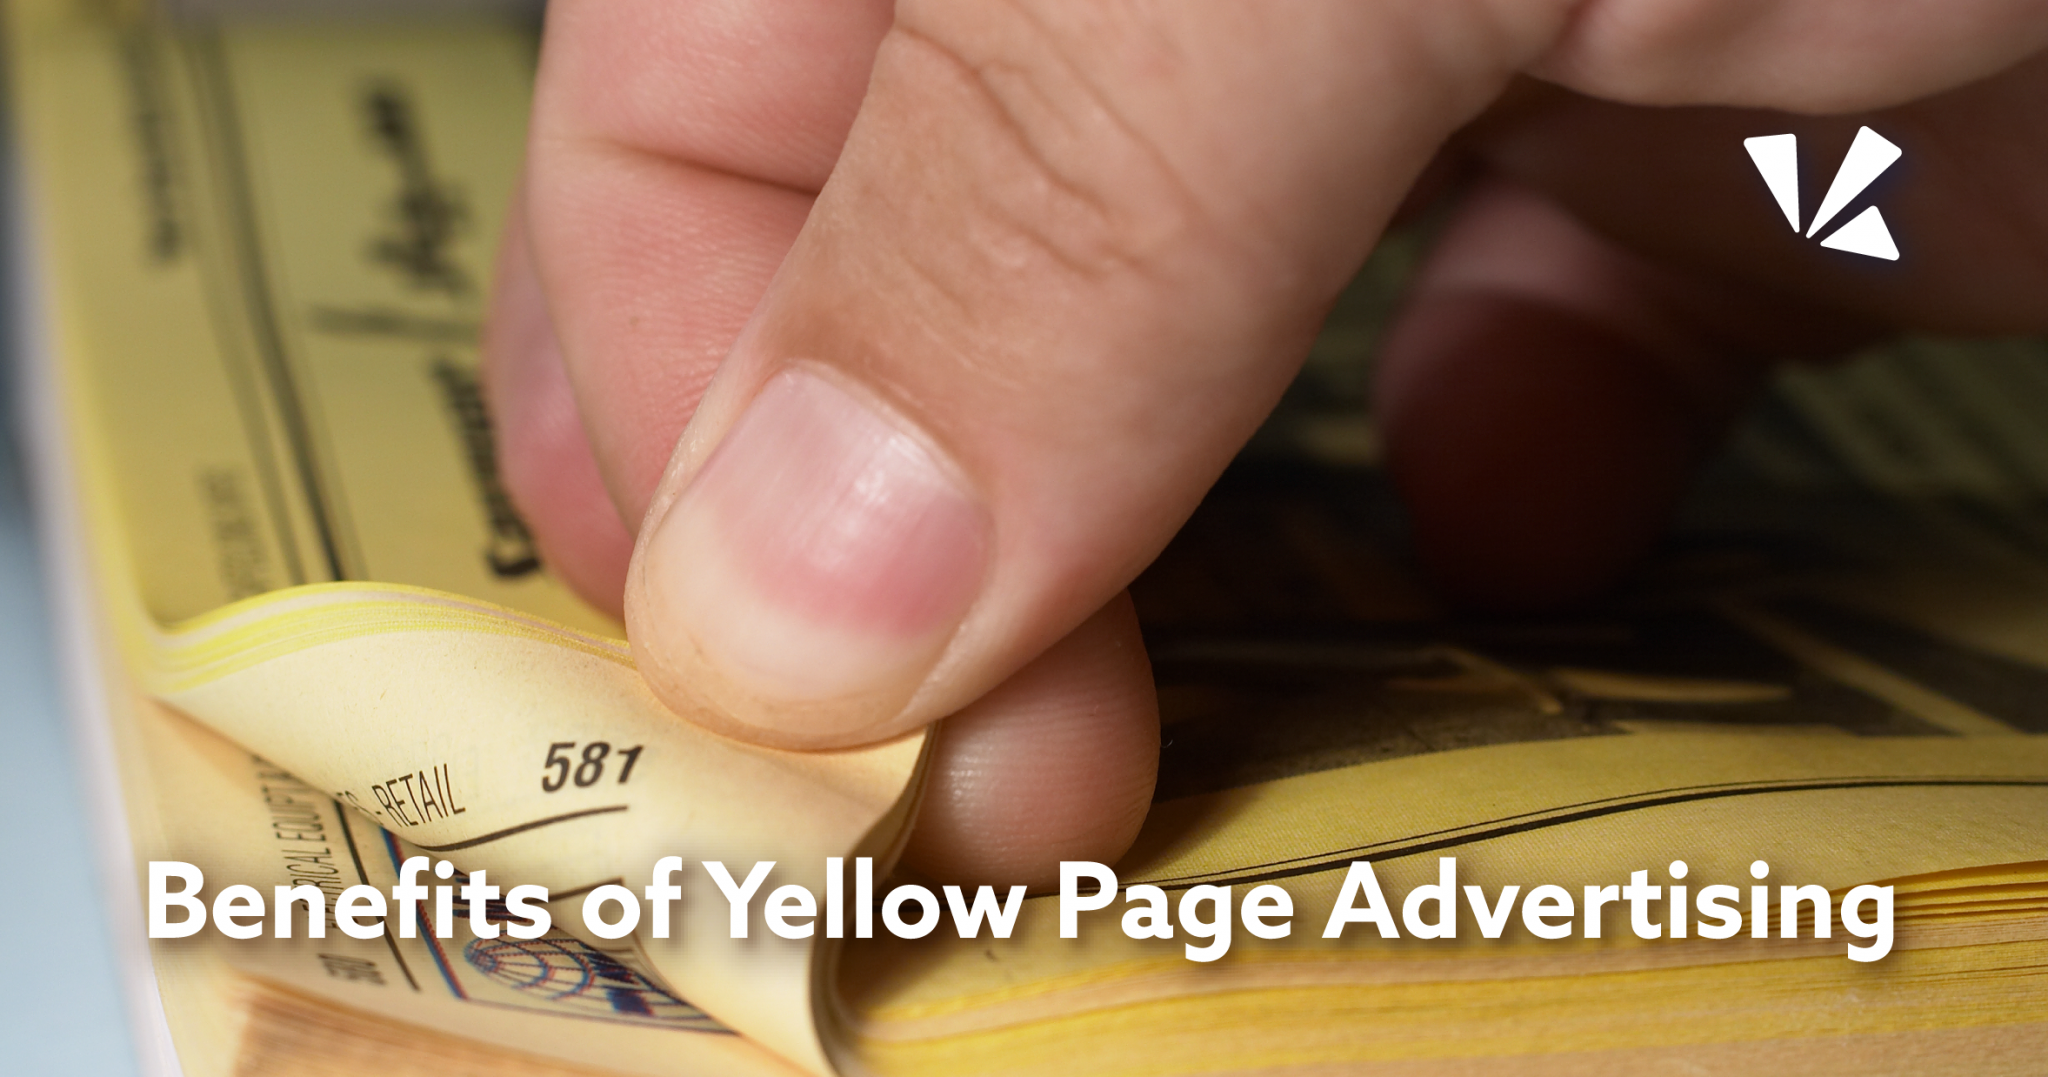 Benefits of yellow page advertising blog header